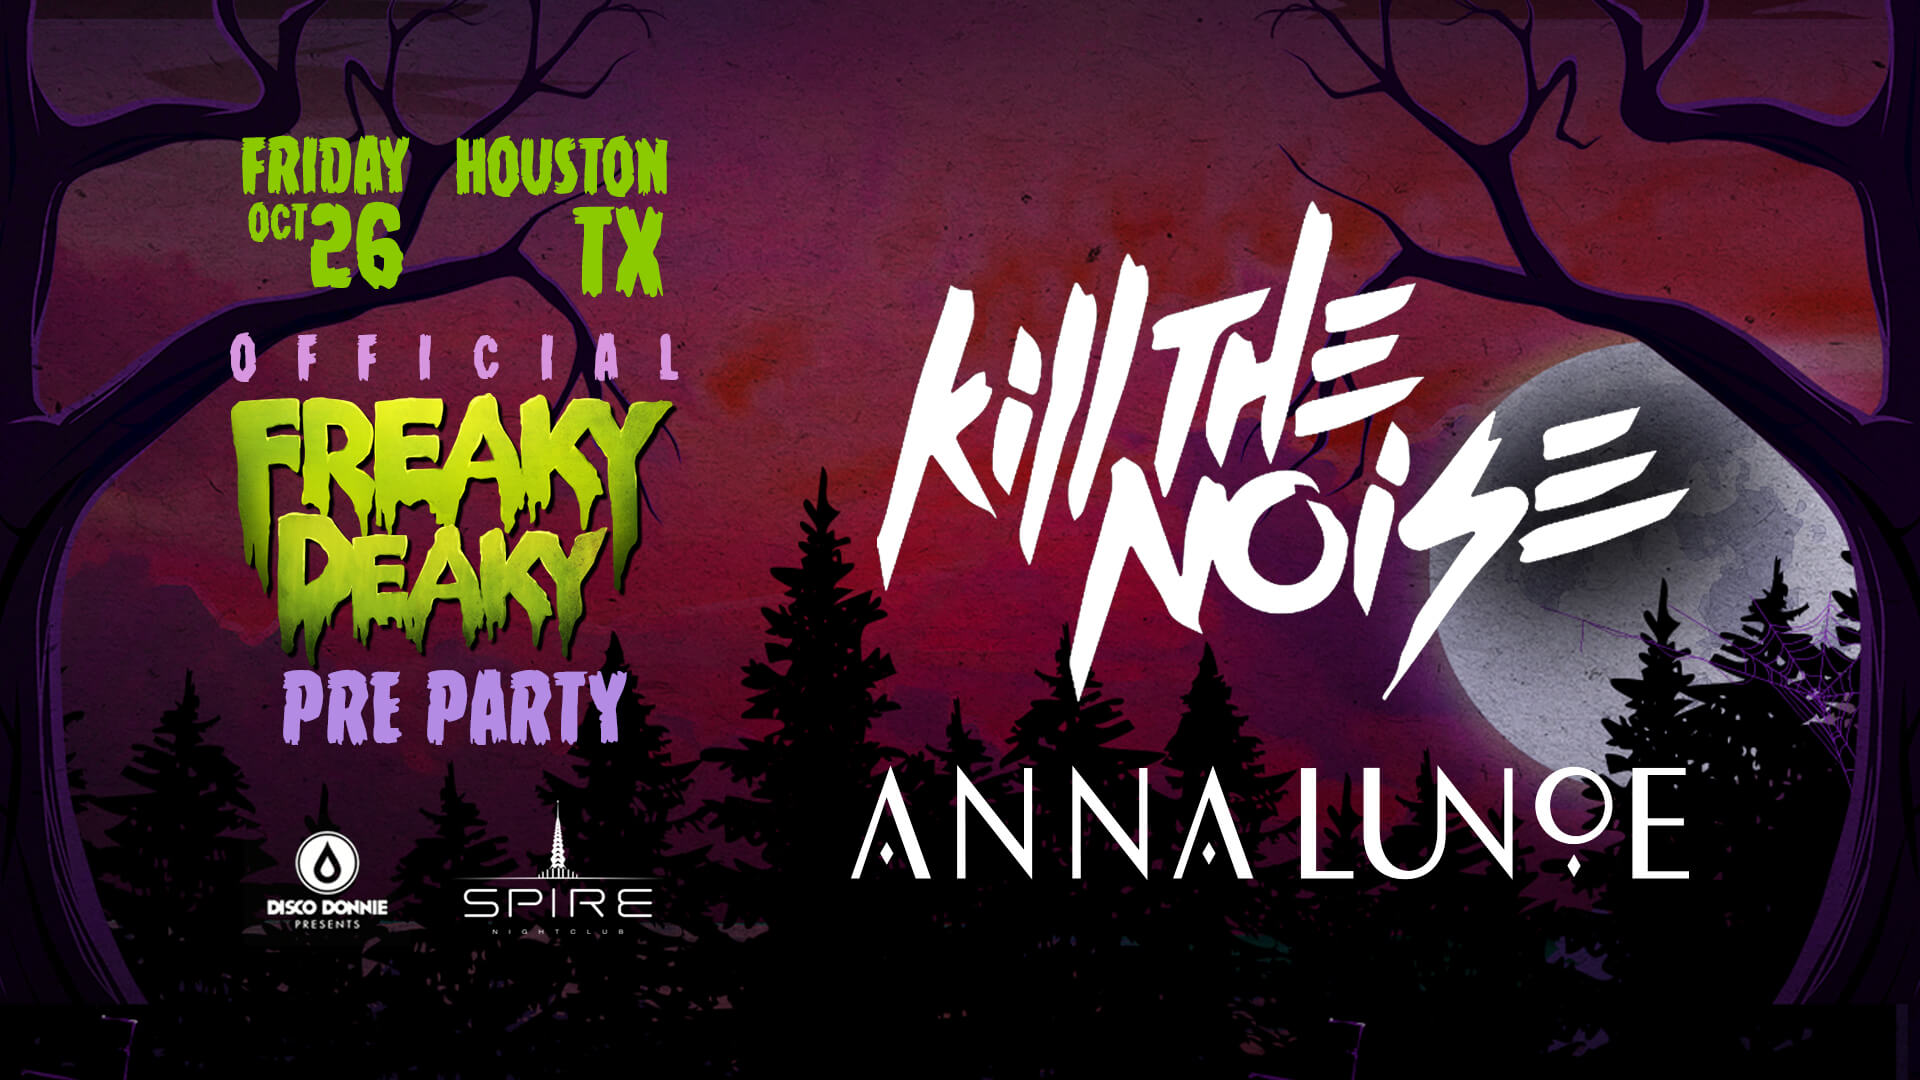 Kill The Noise and Anna Lunoe at the Friday Pre-Party!